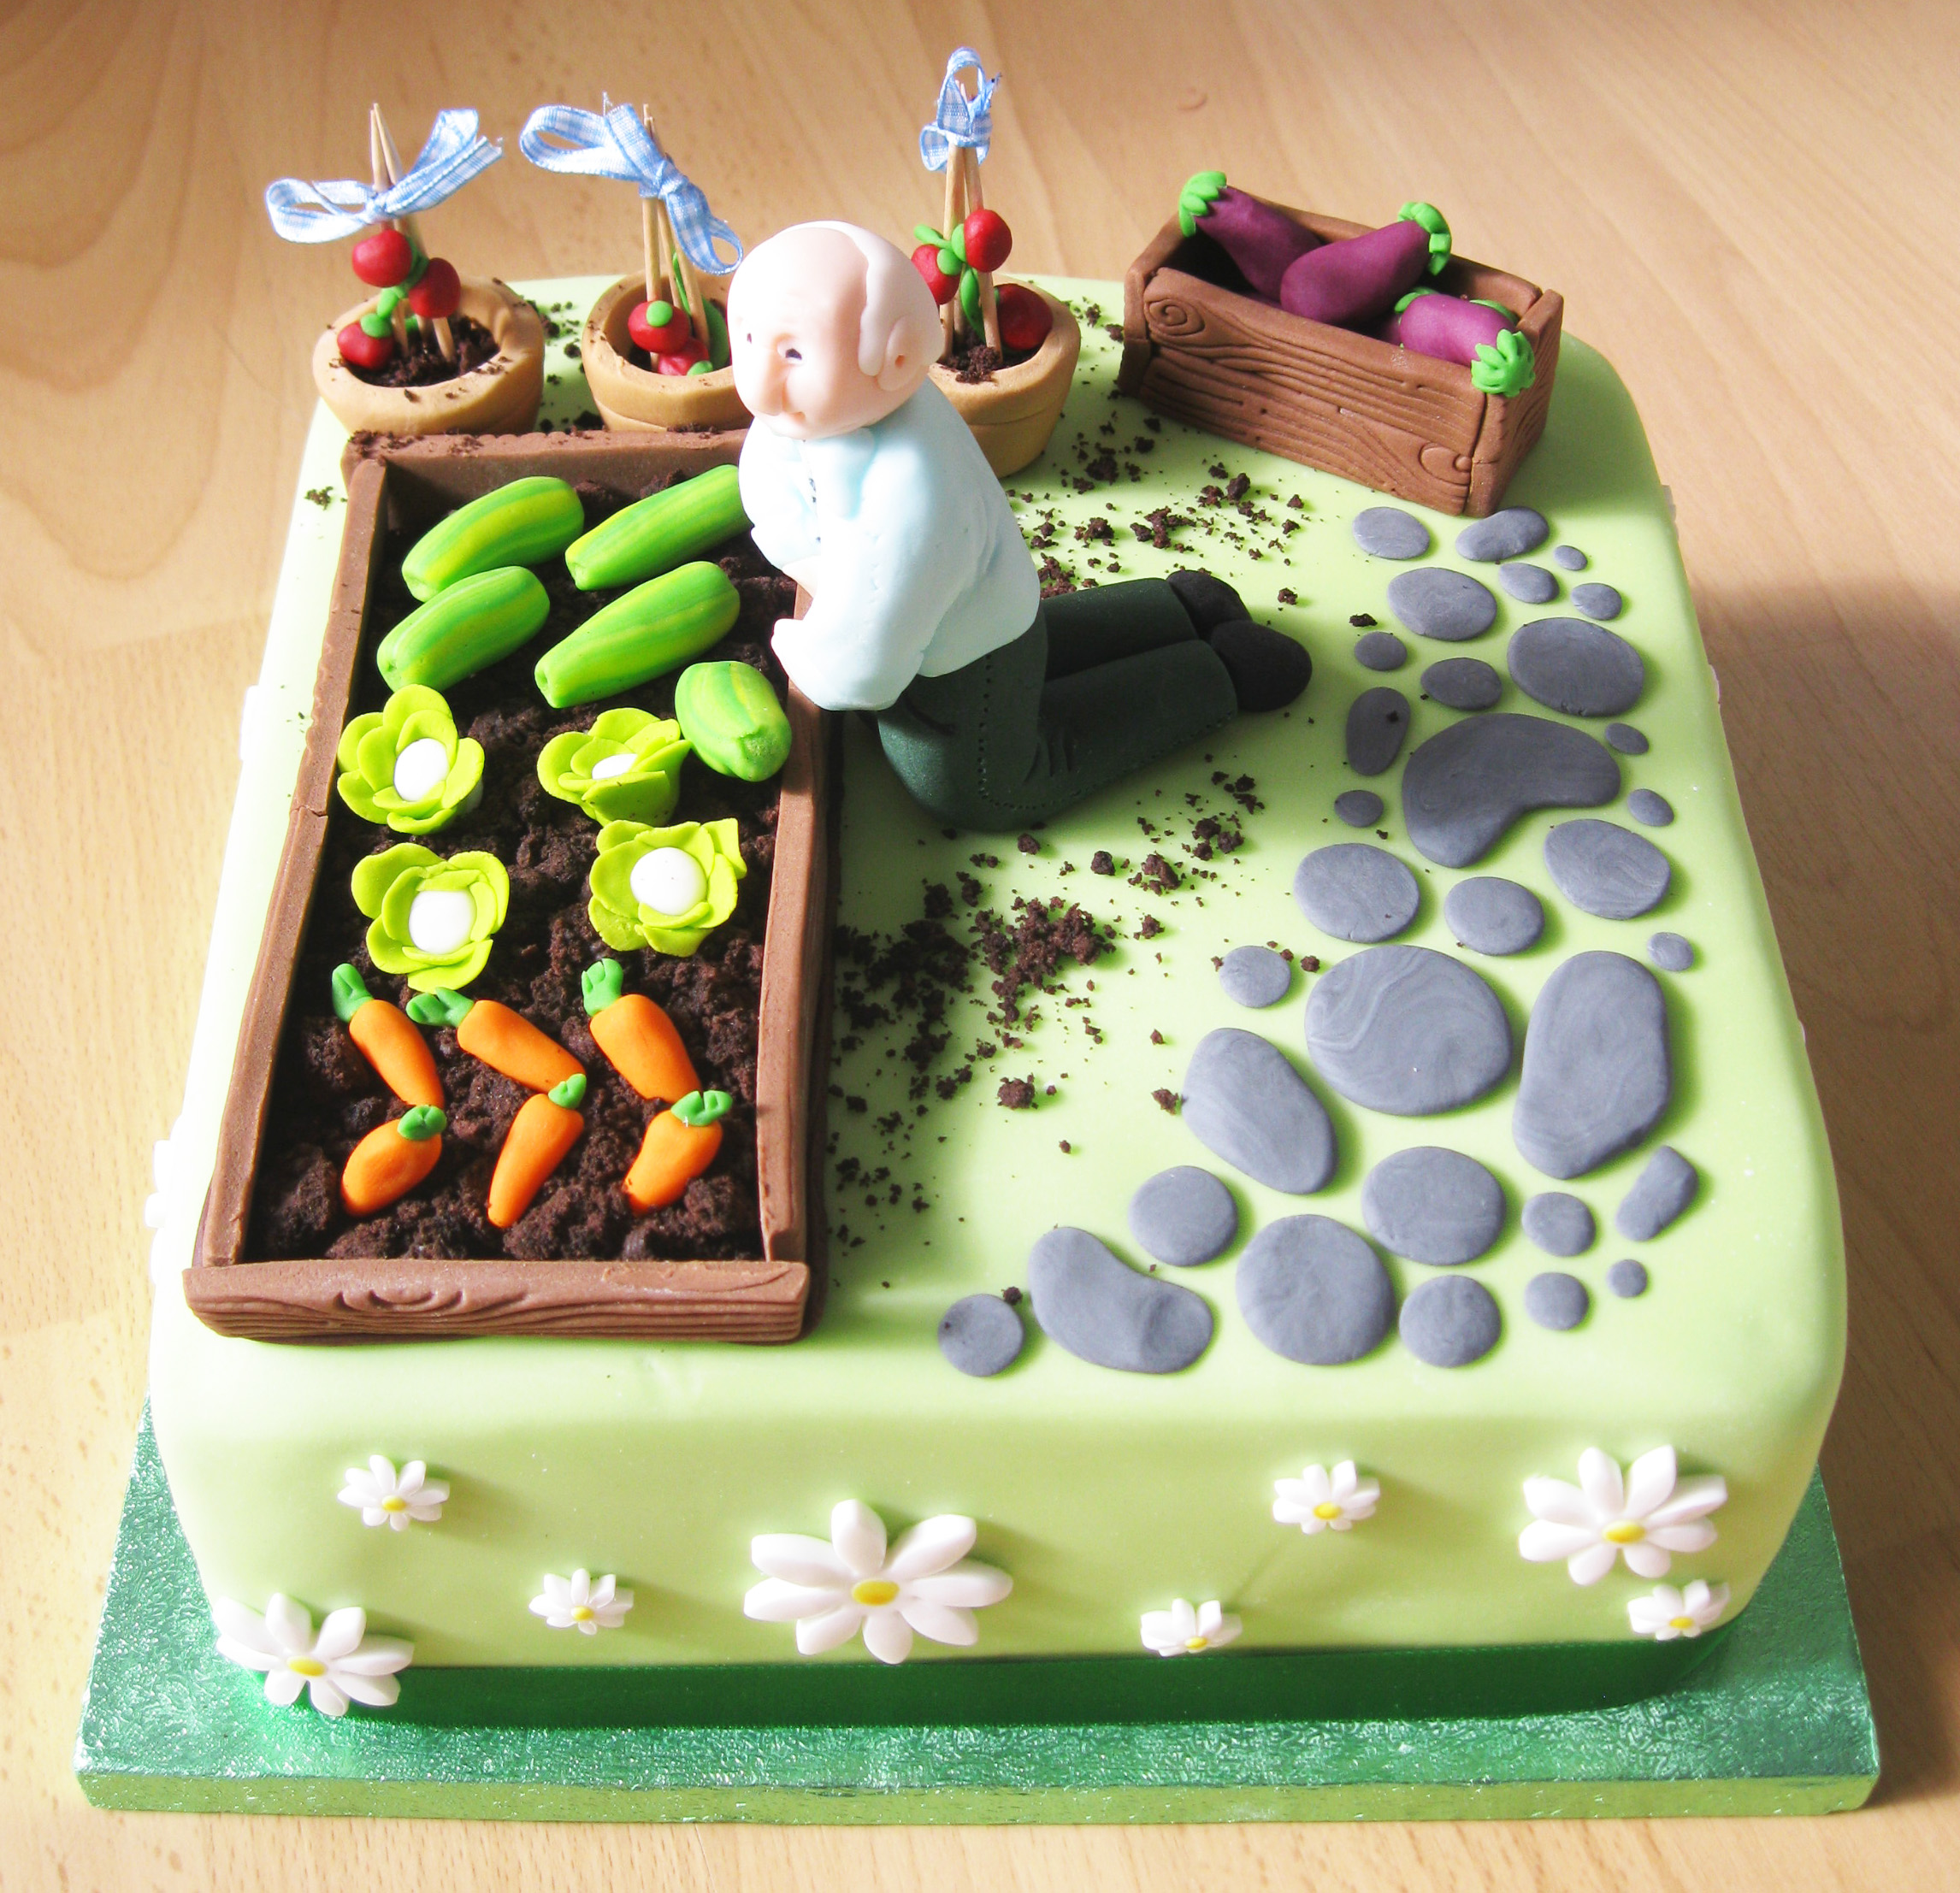 1000+ images about Allotmentvegetable cakes on Pinterest